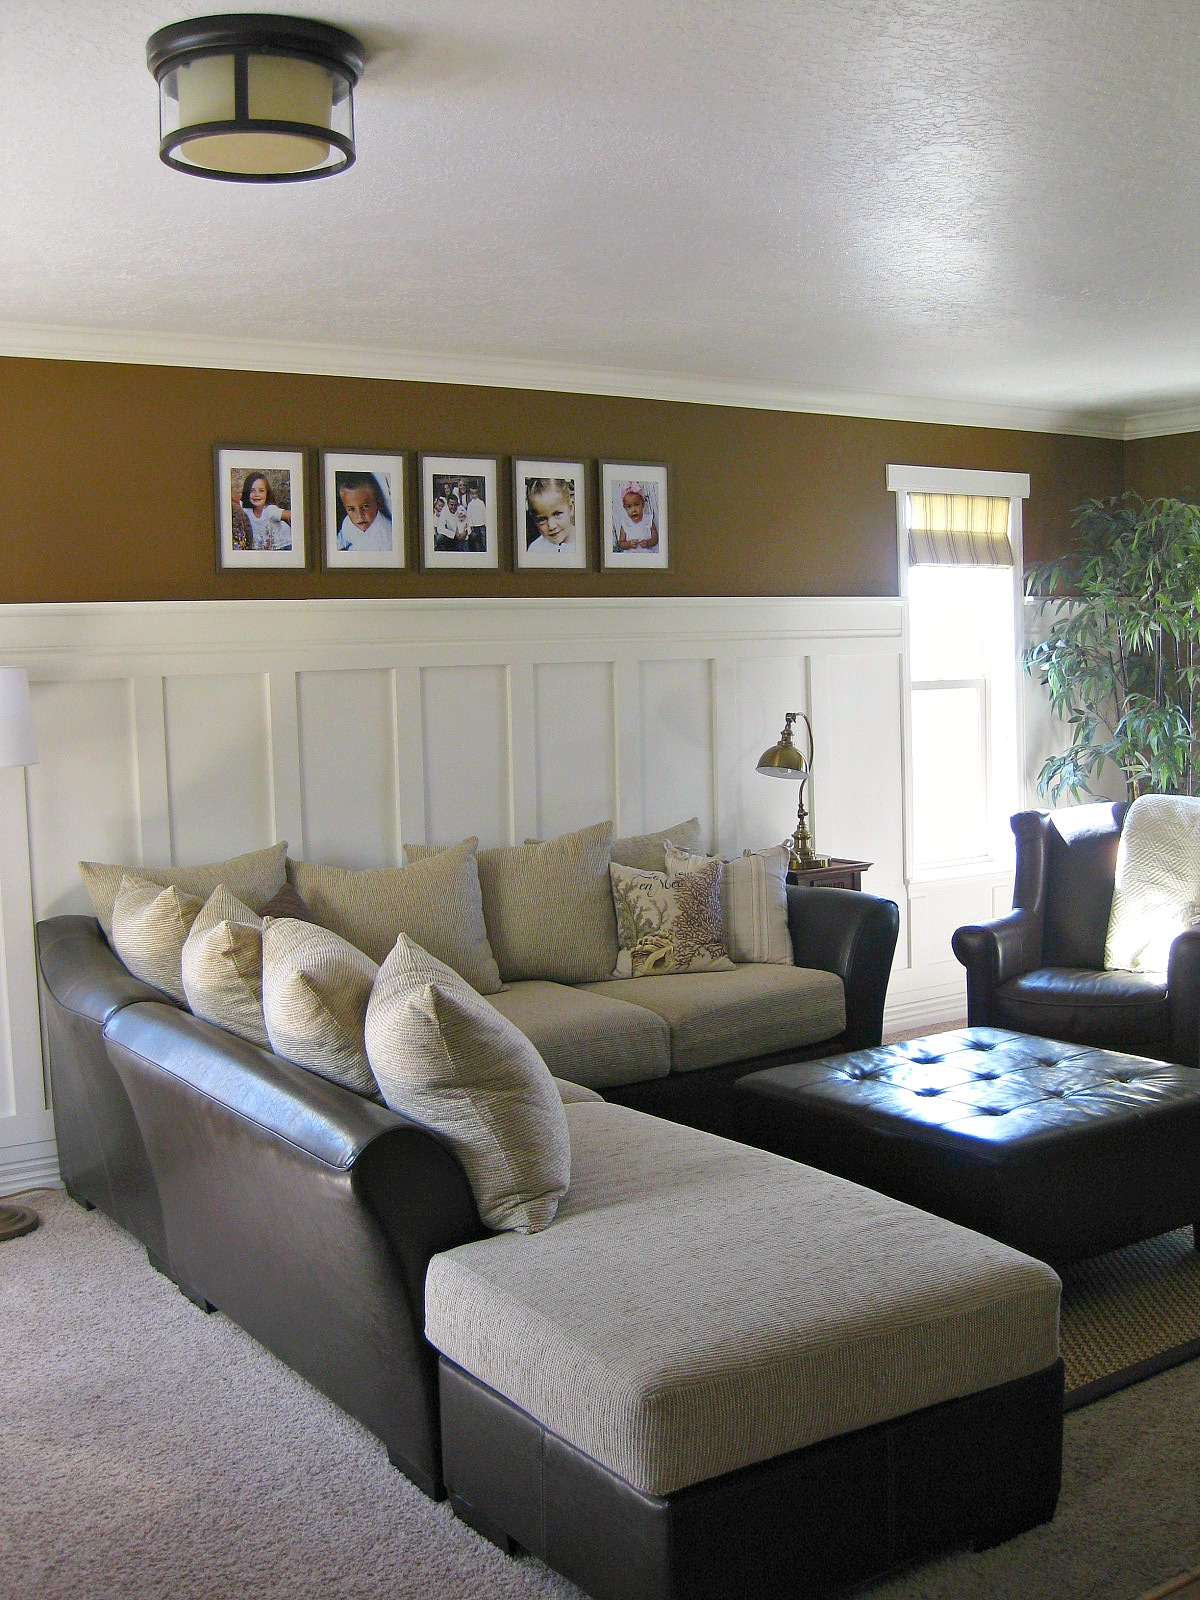 Tda decorating and design board batten accent wall tutorial - Decorating walls with pictures ...